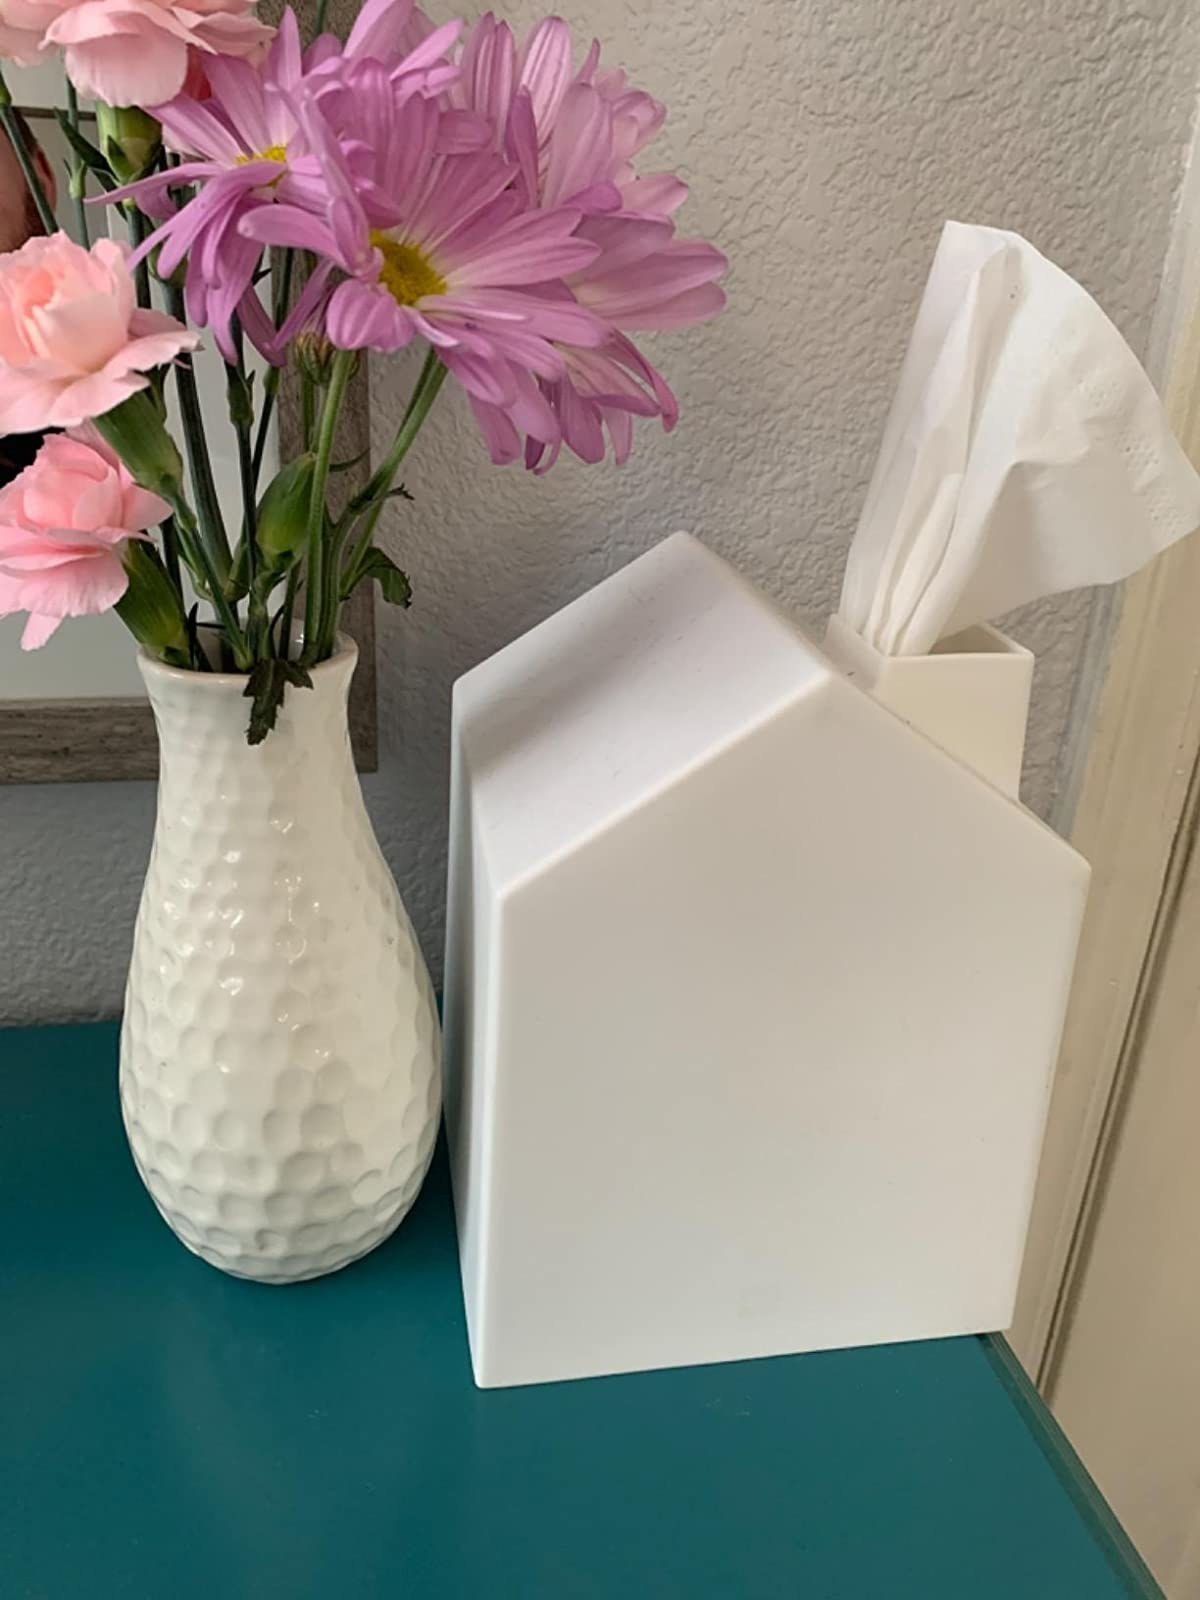 The tissue box cover in white